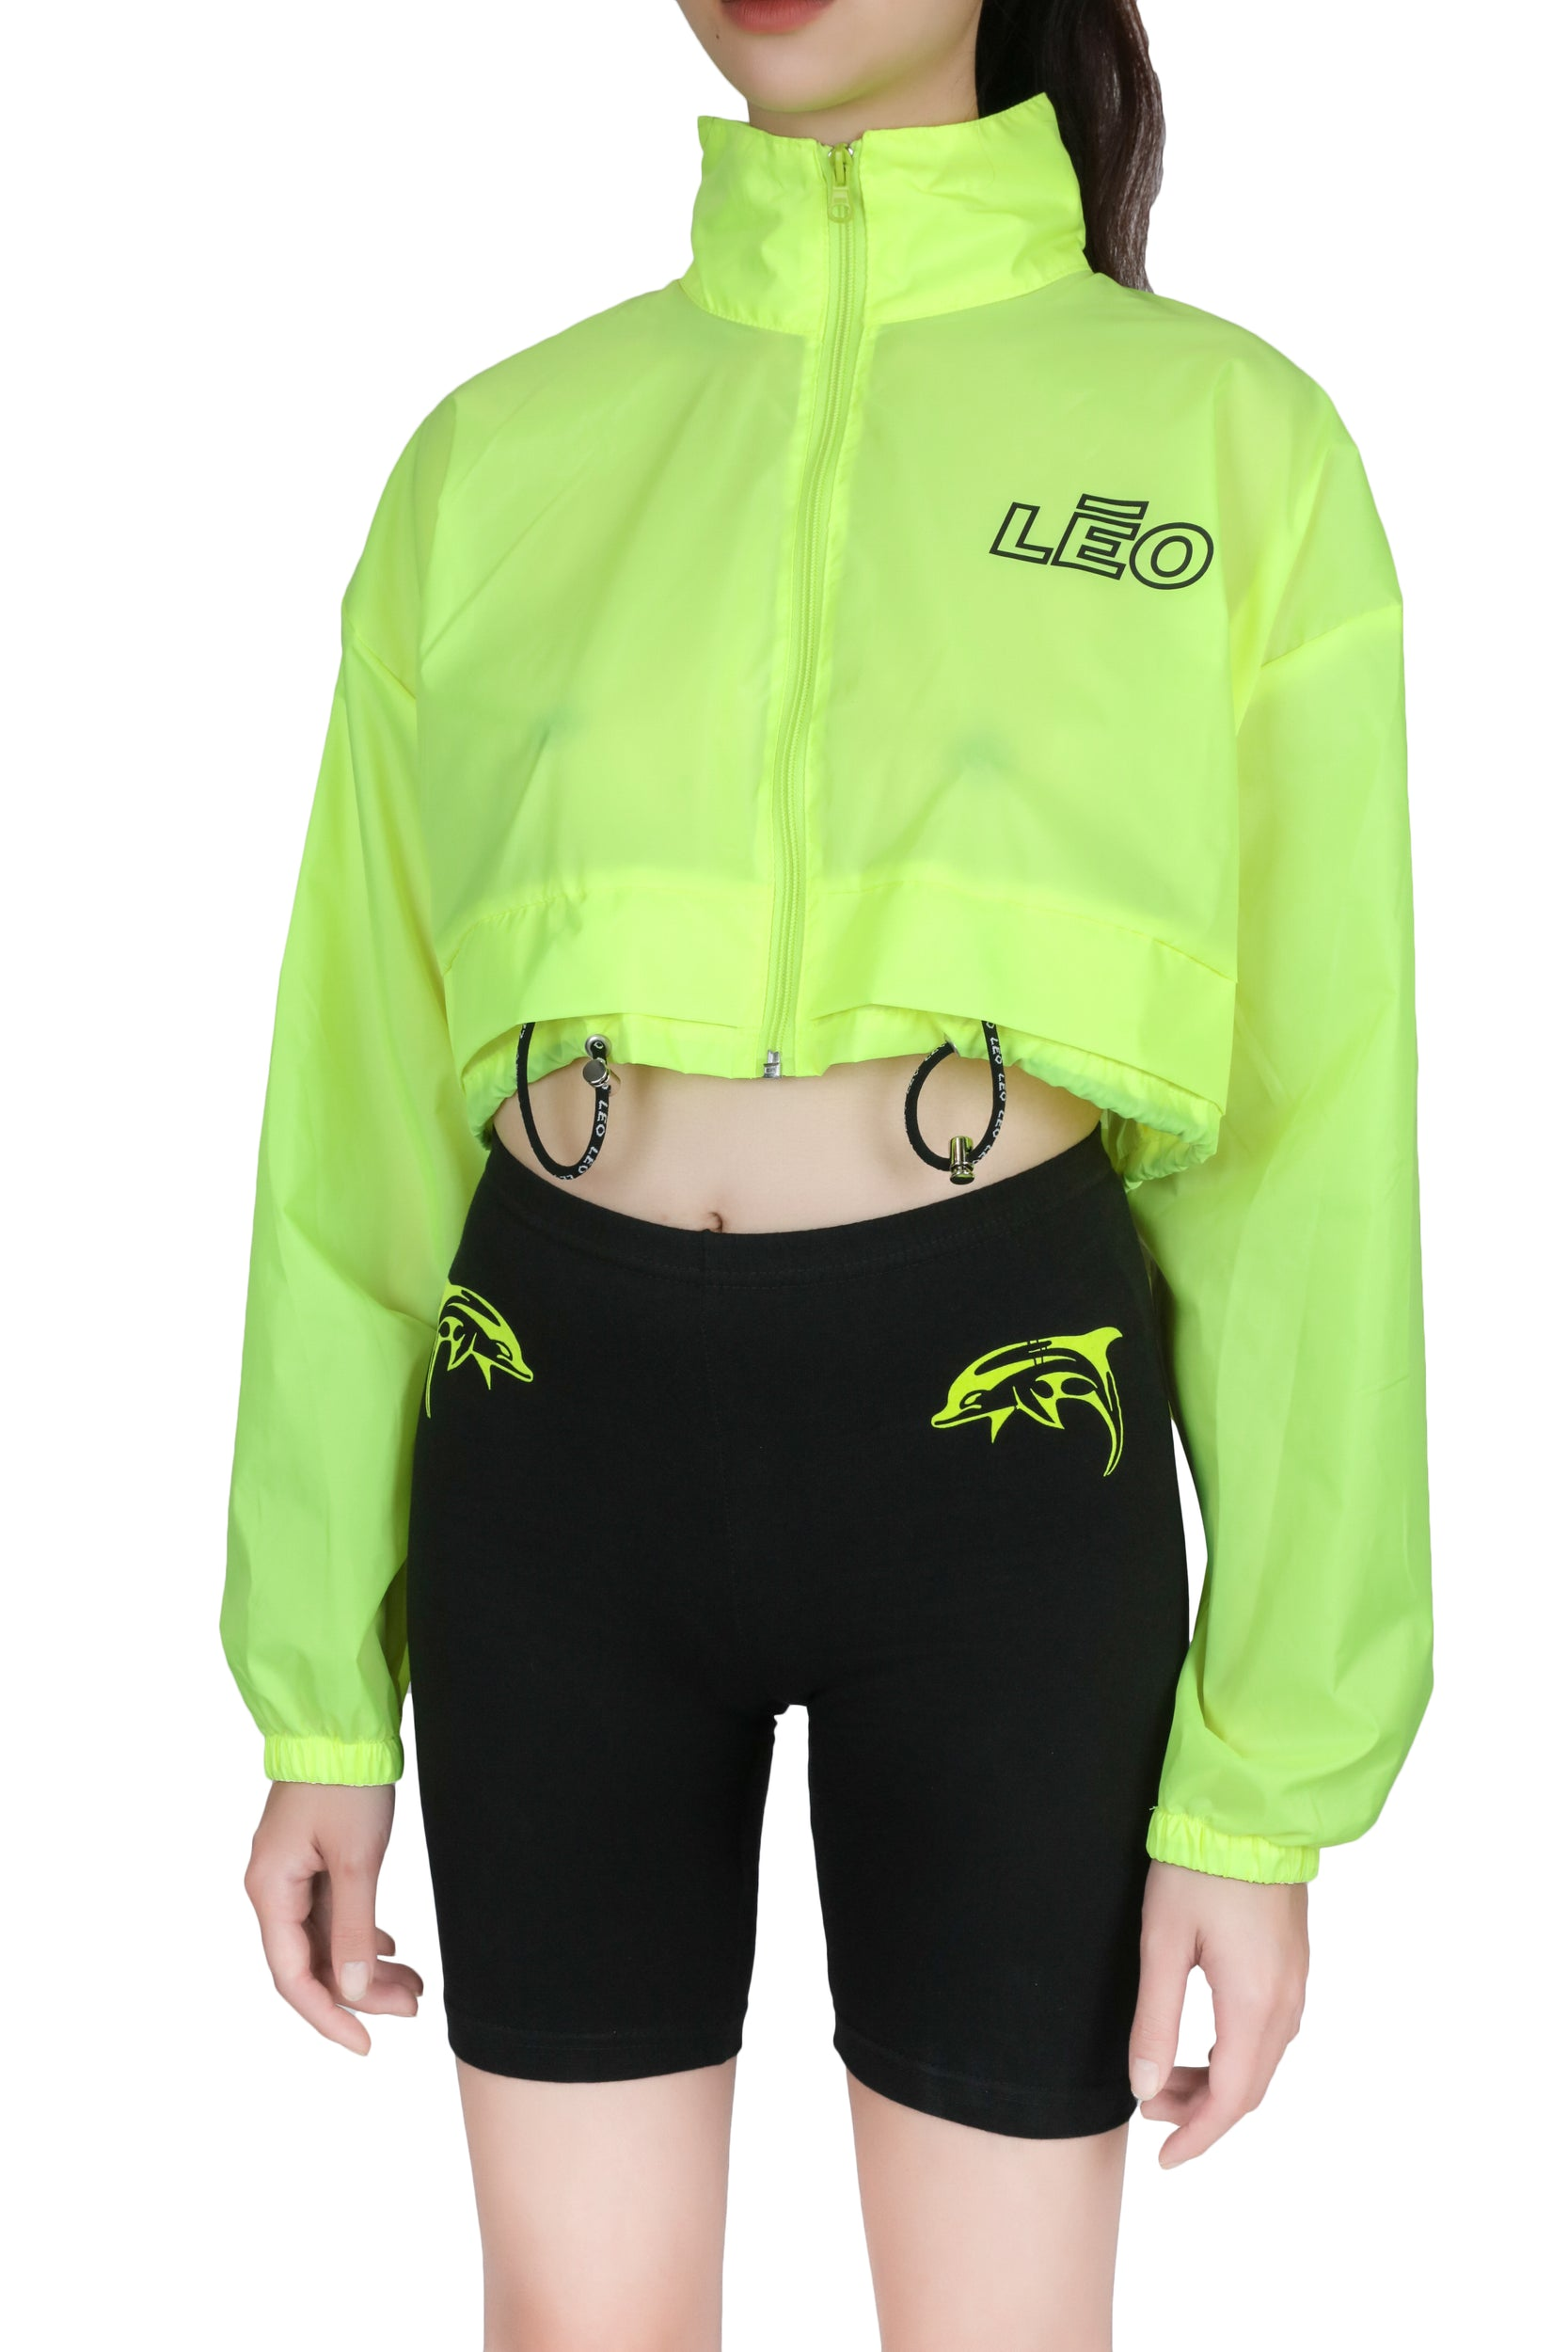 Windbreaker Cropped Jacket TOP LĒO - NOLM - Clothes Online - nolmau.com - Sydney-Australia Online Shopping